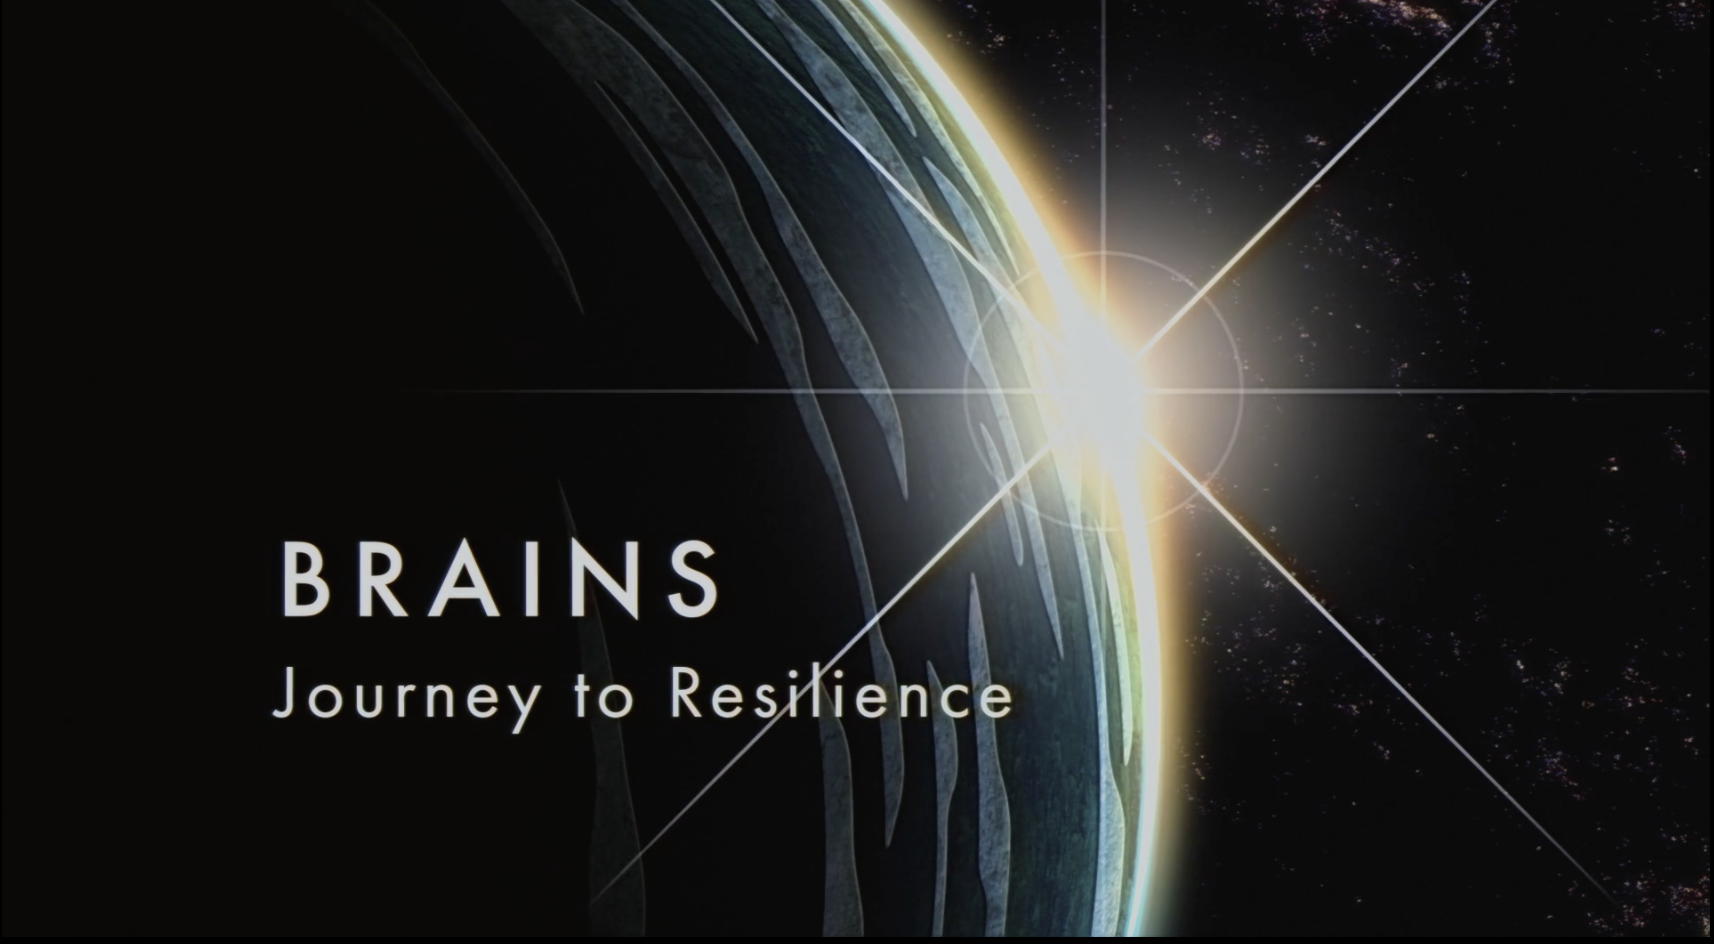 Brains: Journey To Resilience